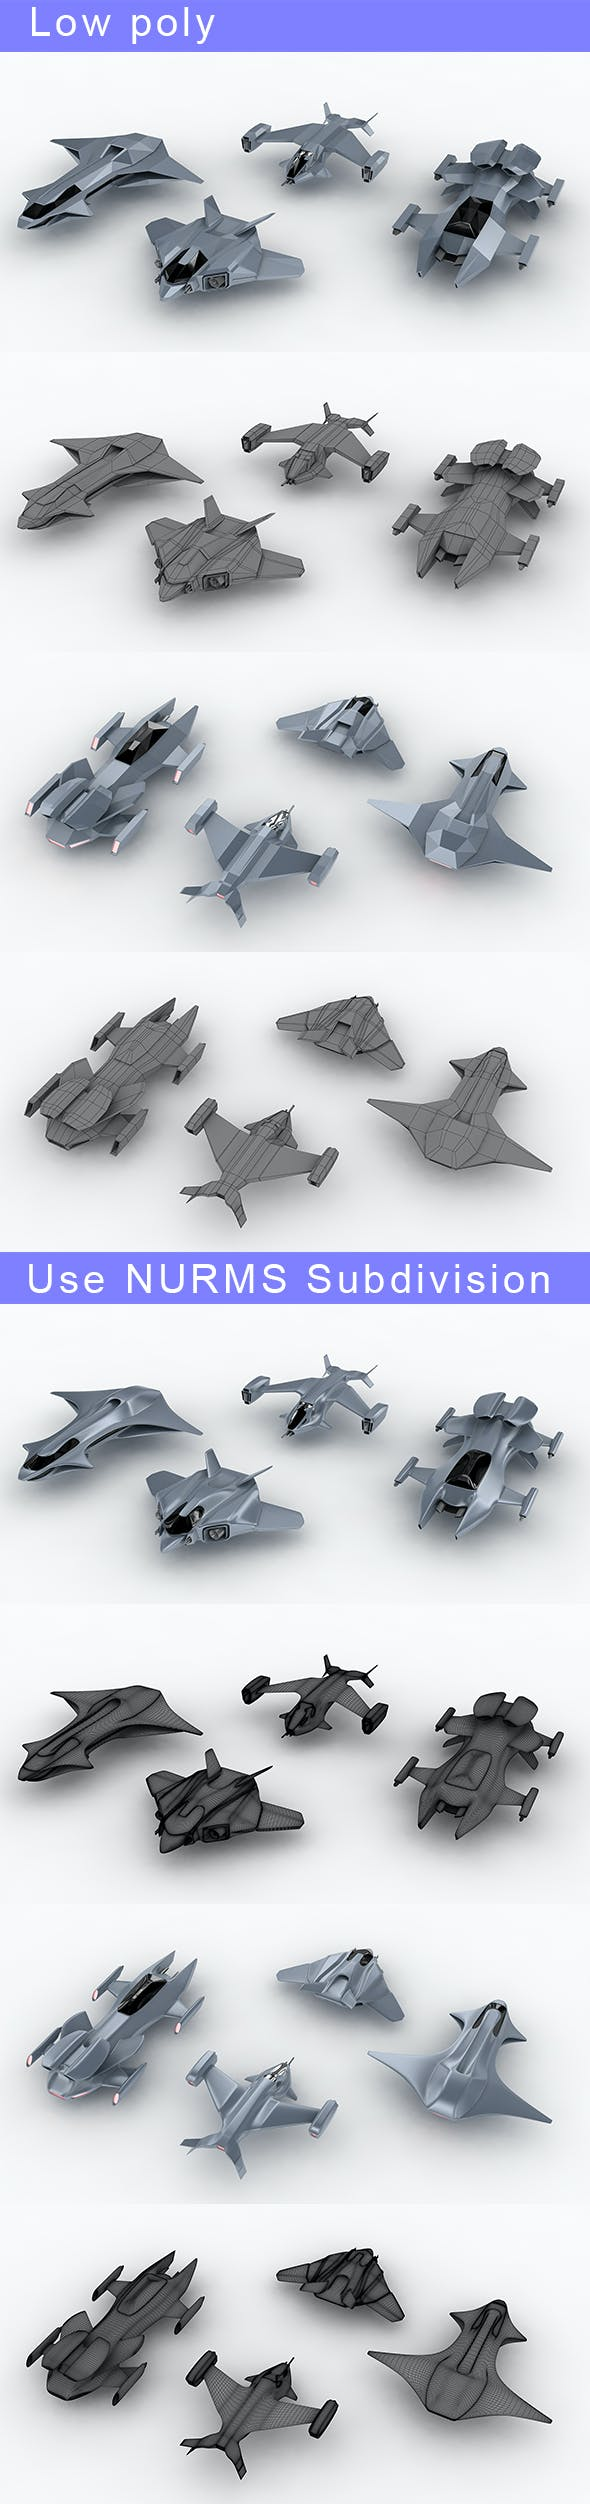 Low-poly Space ships (set 3) - 3DOcean Item for Sale